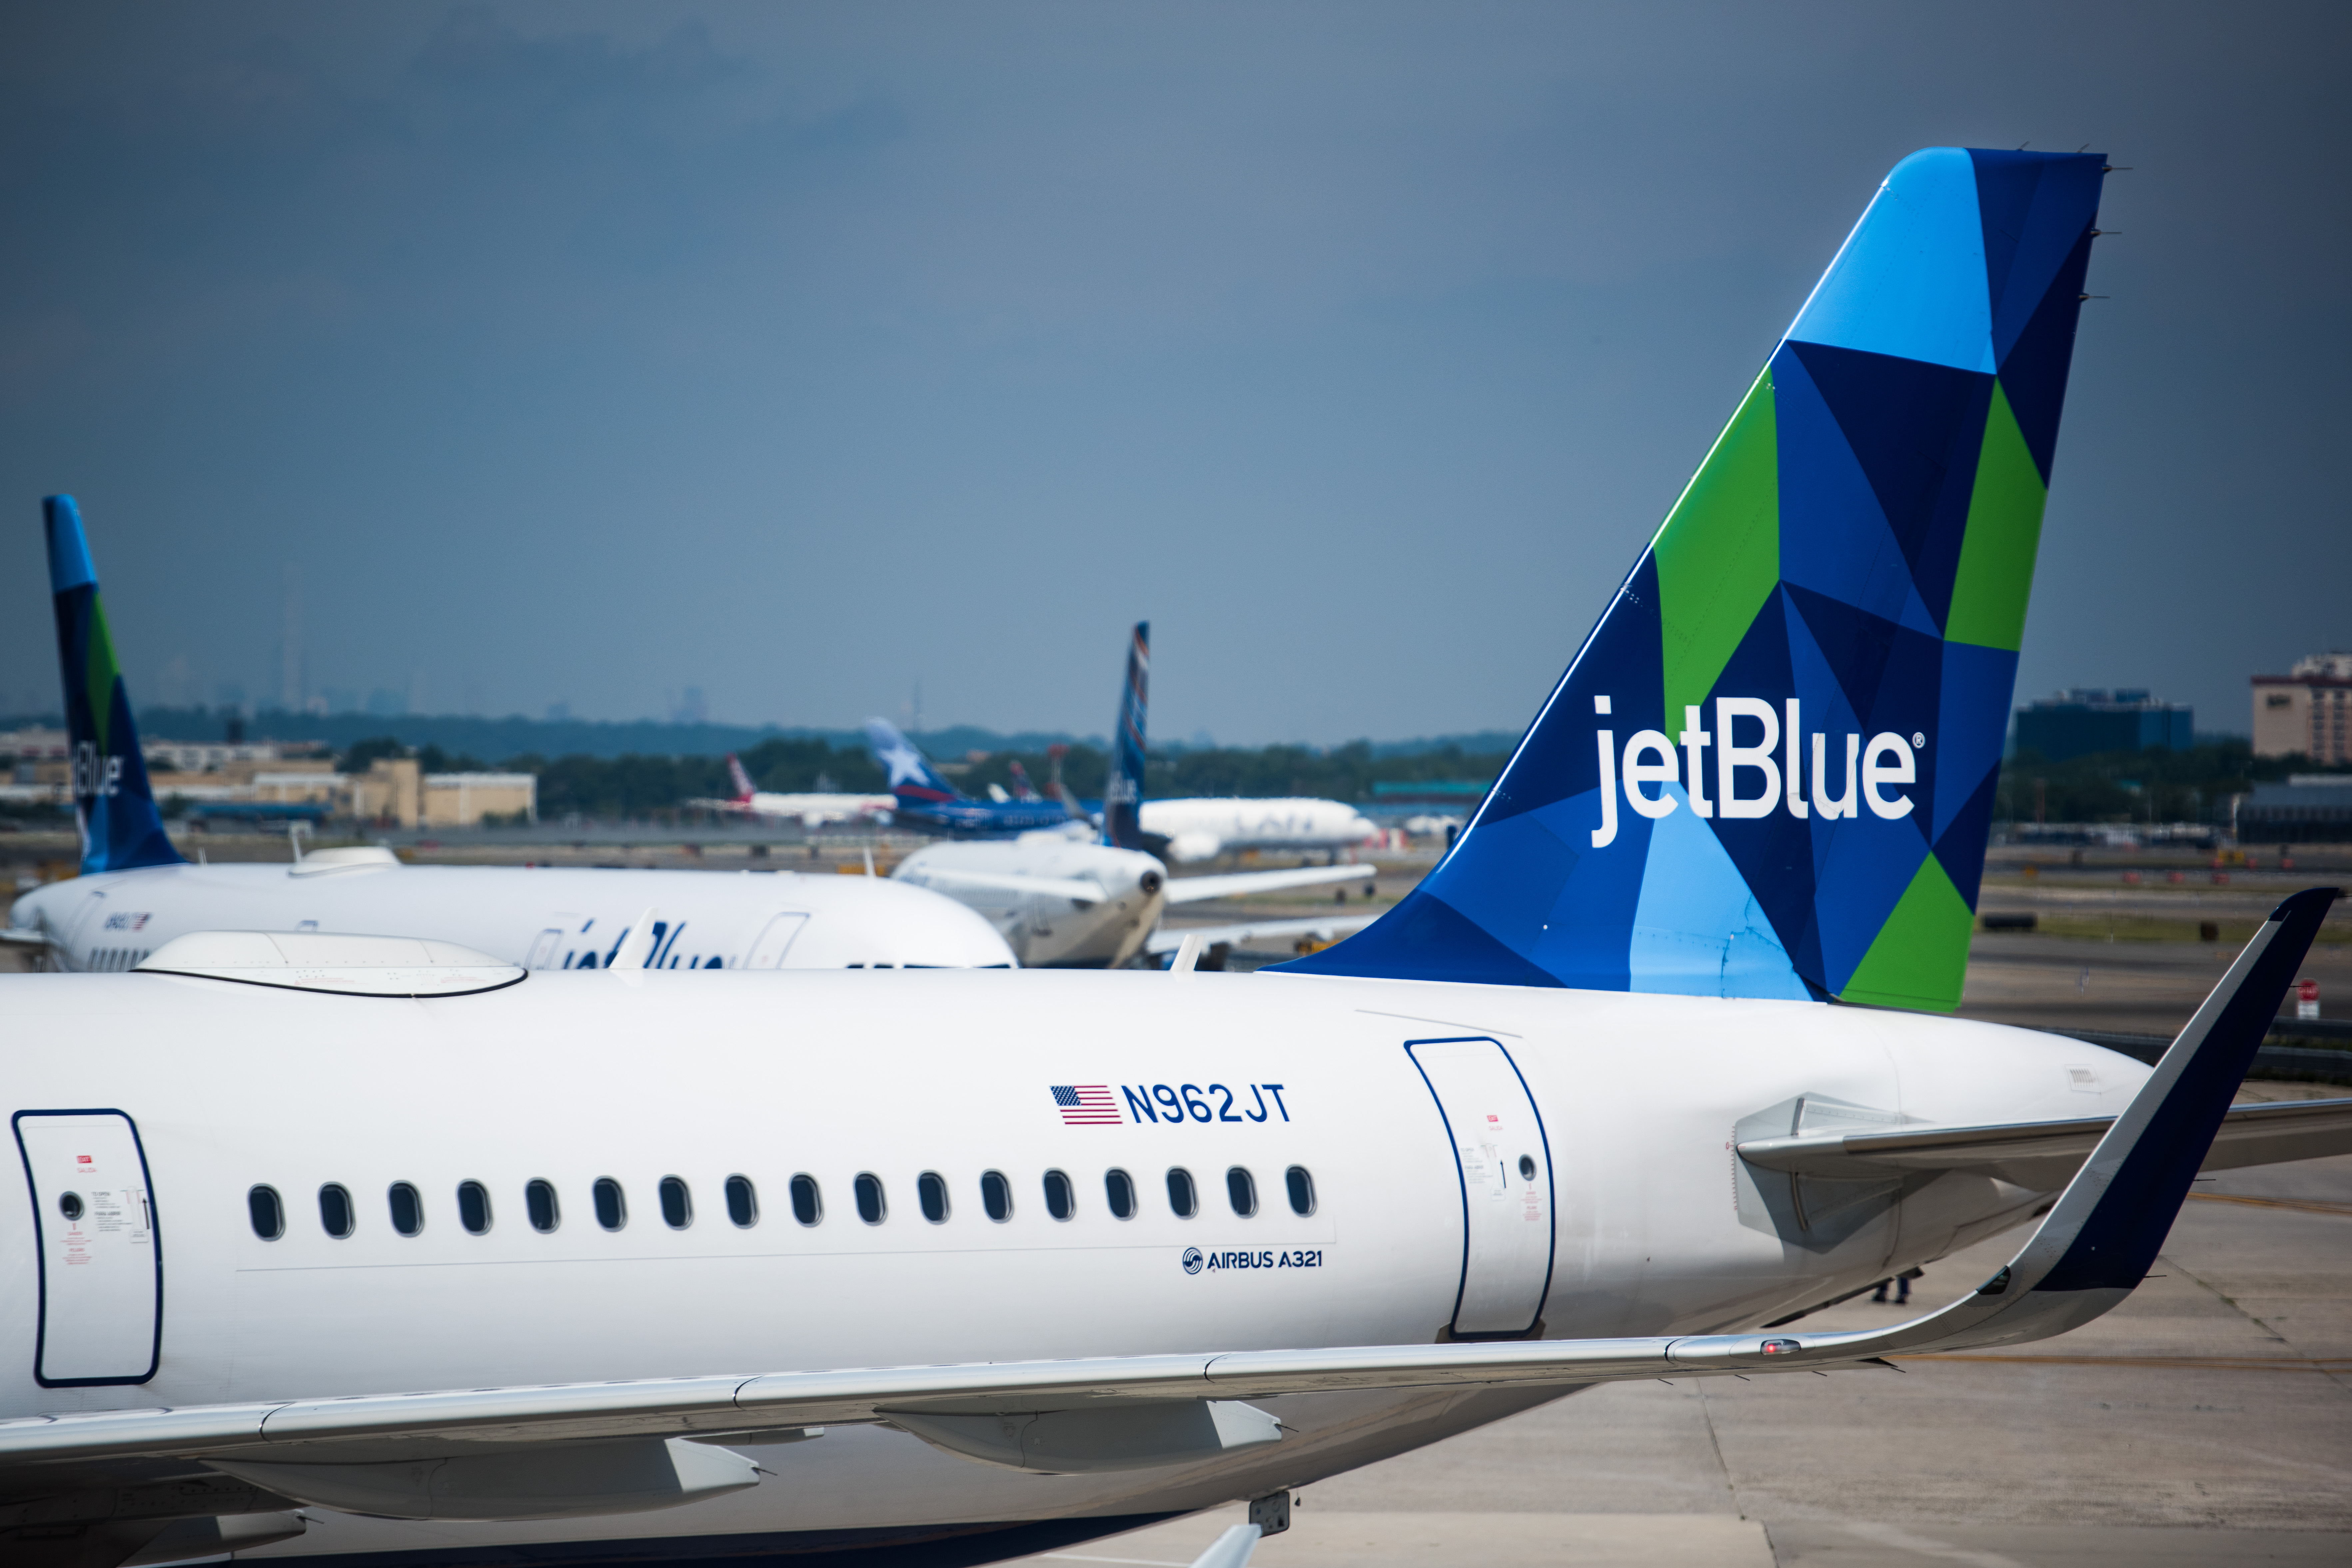 A JetBlue Airways Corp. Airbus A321 plane sits at a gate outside of Terminal 5 at John F. Kennedy International Airport (JFK) in New York on July 12, 2017.